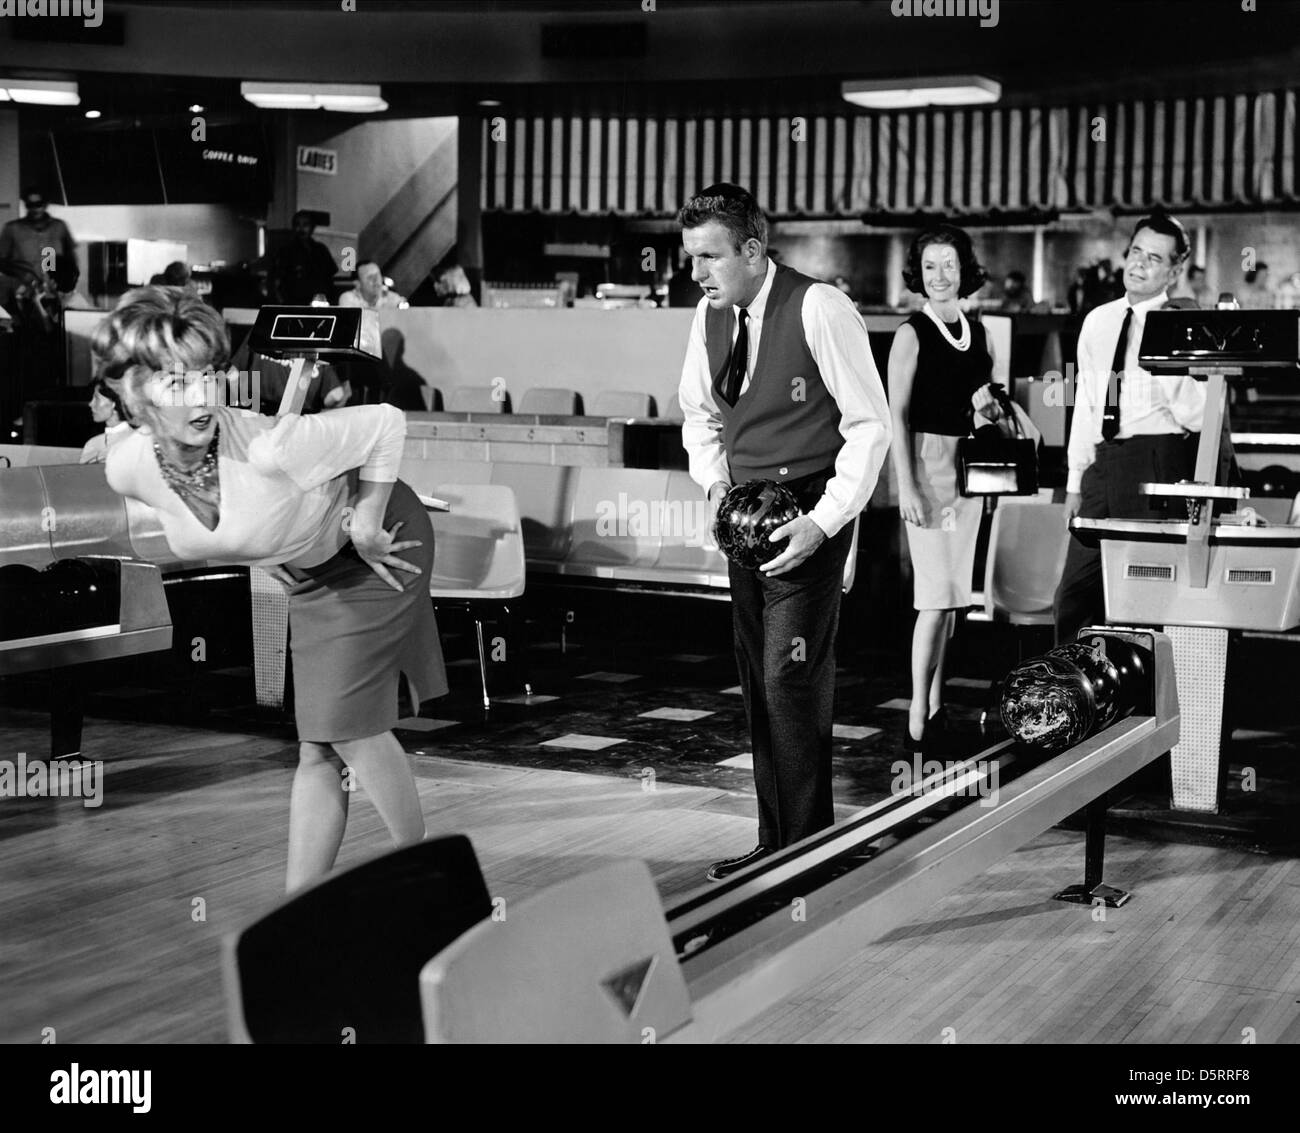 tom daly stock photos tom daly stock images alamy stella stevens jerry van dyke dina merrill glenn ford the courtship of eddie s father